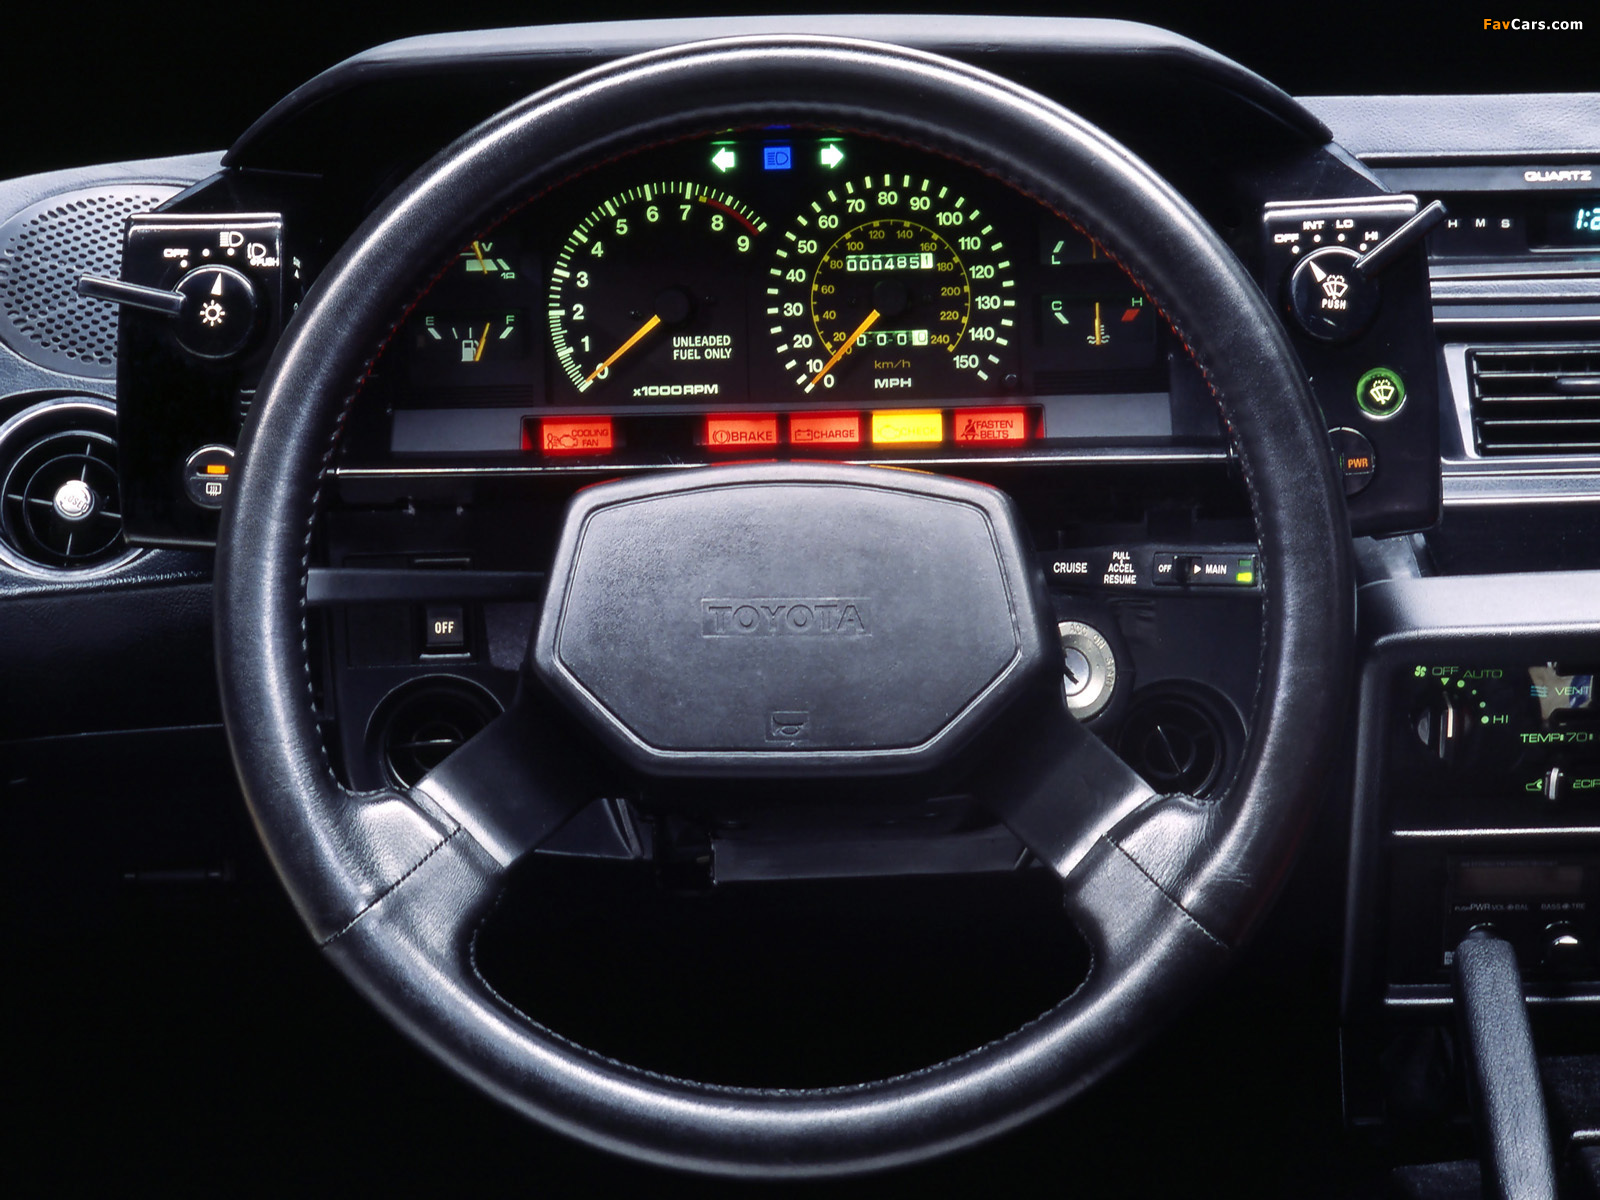 toyota_mr2_1985_pictures_1.jpg